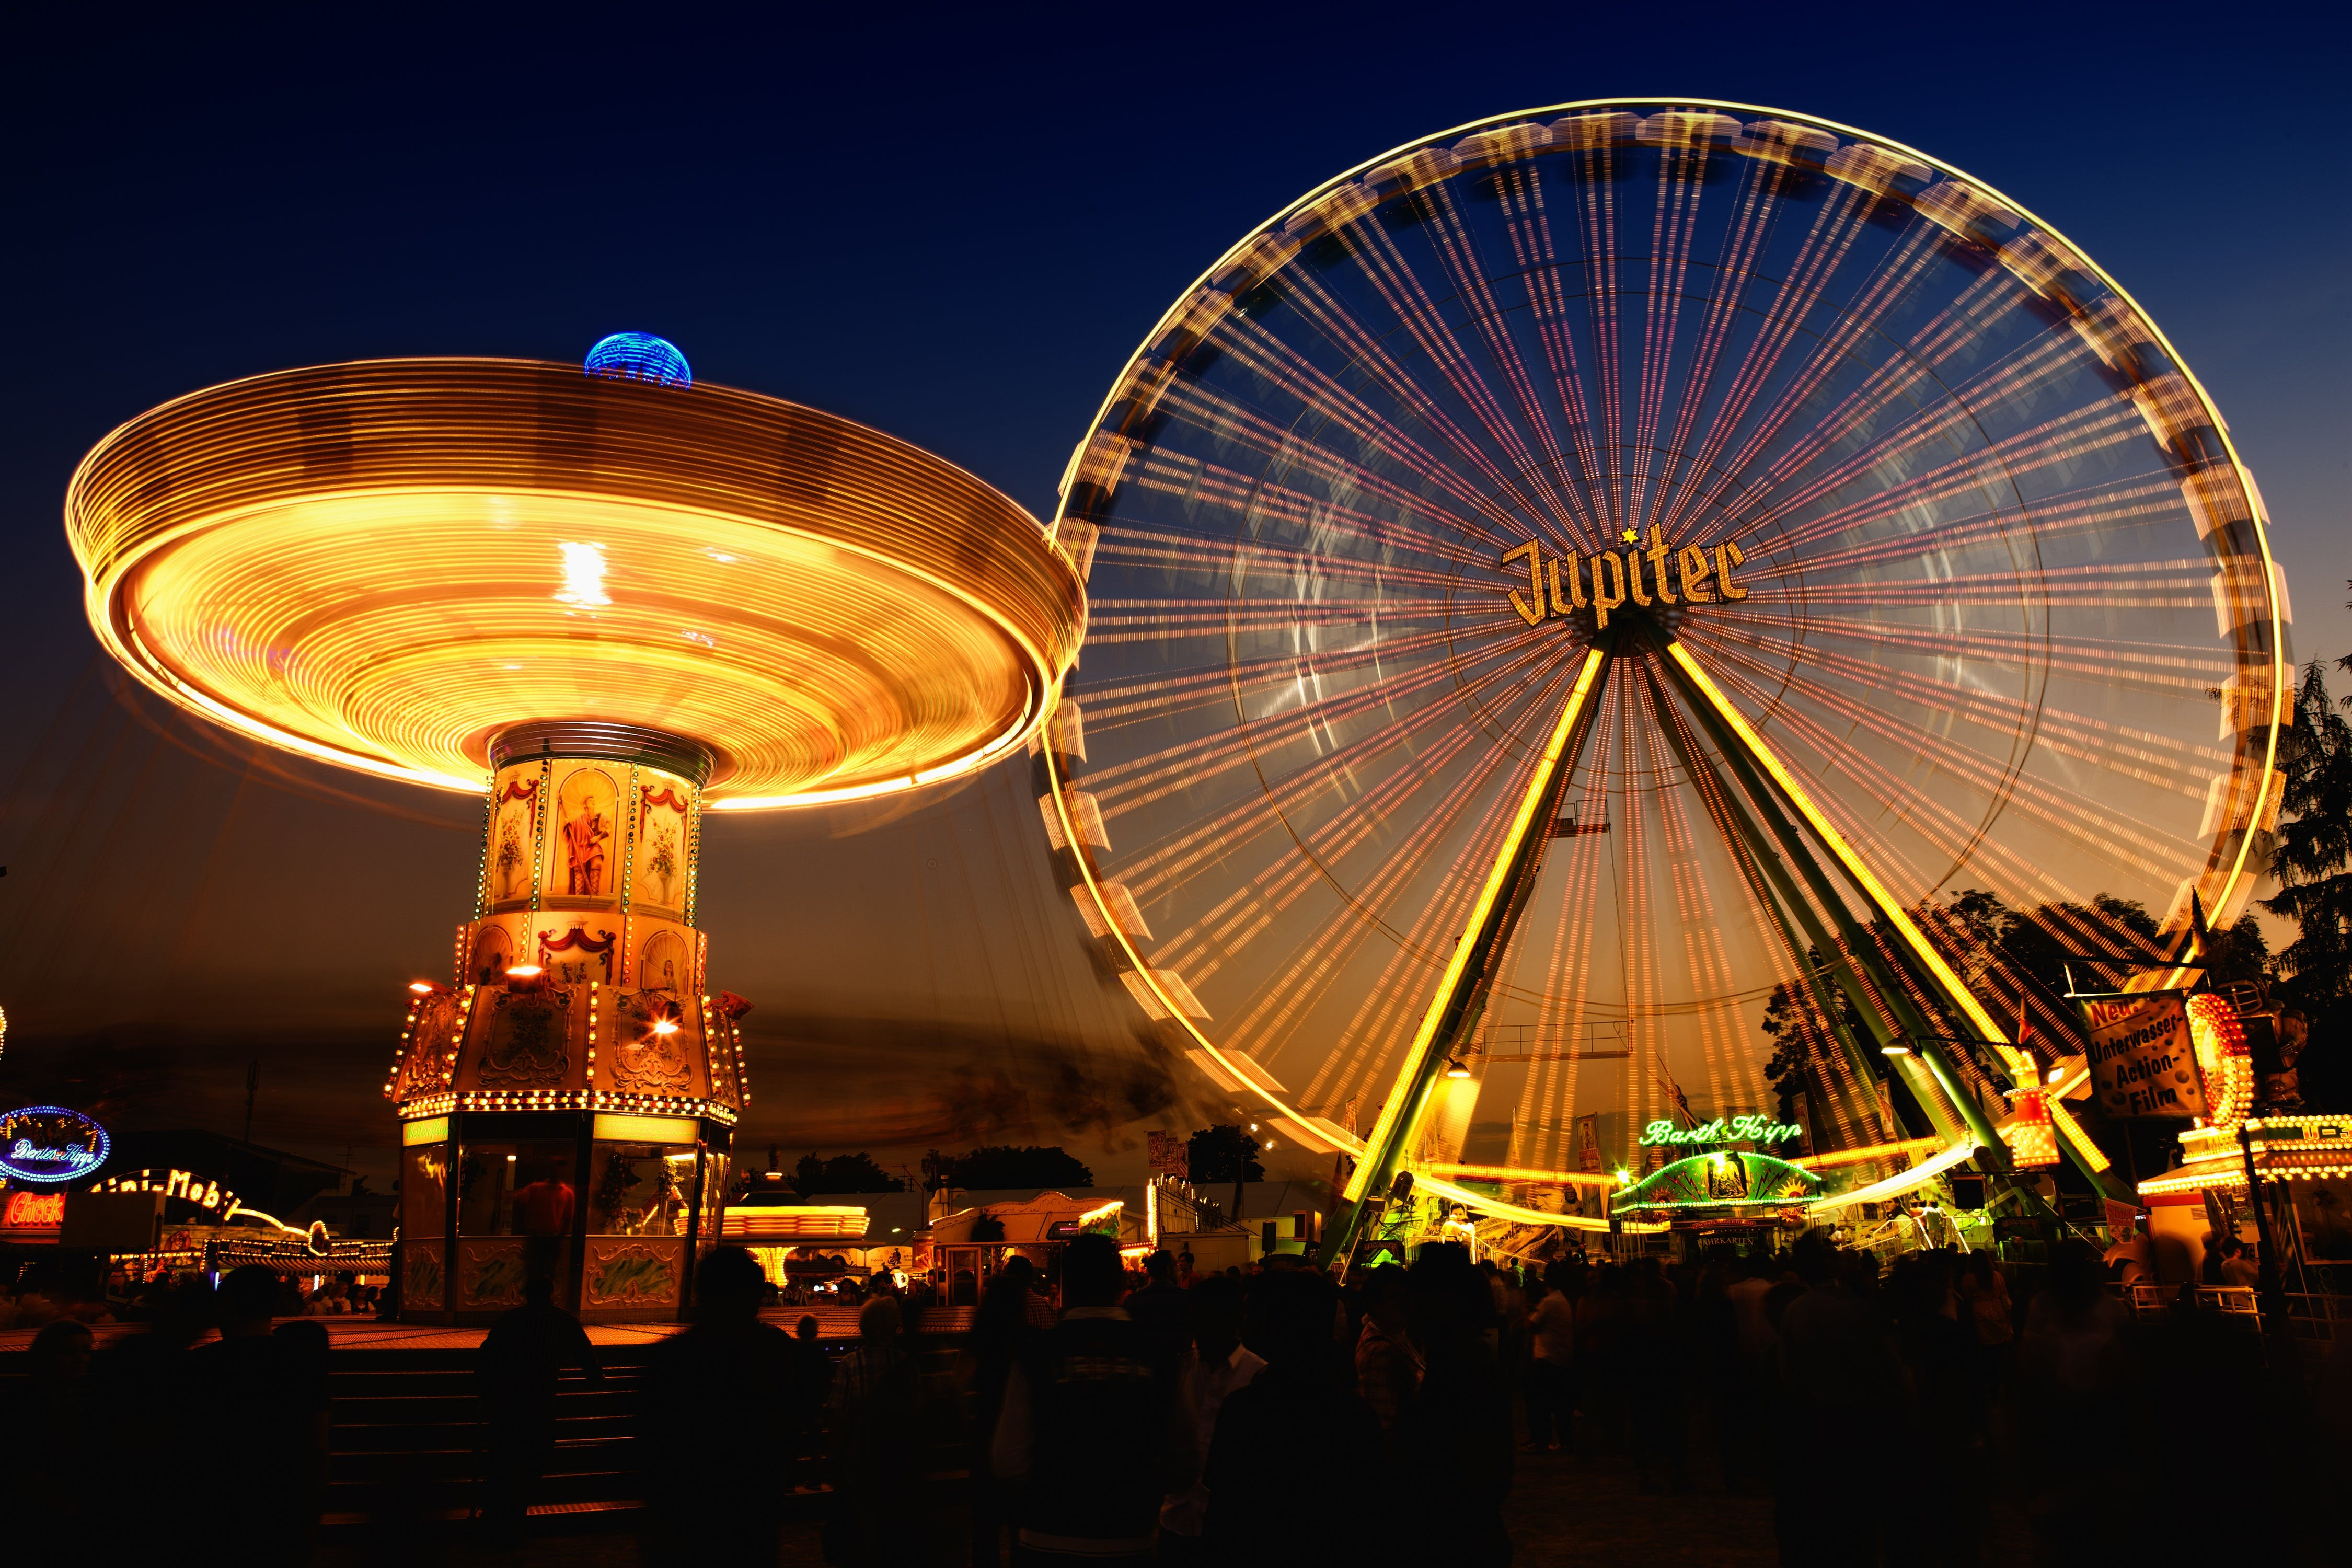 Time Lapse Photo of Circus Rides at Night